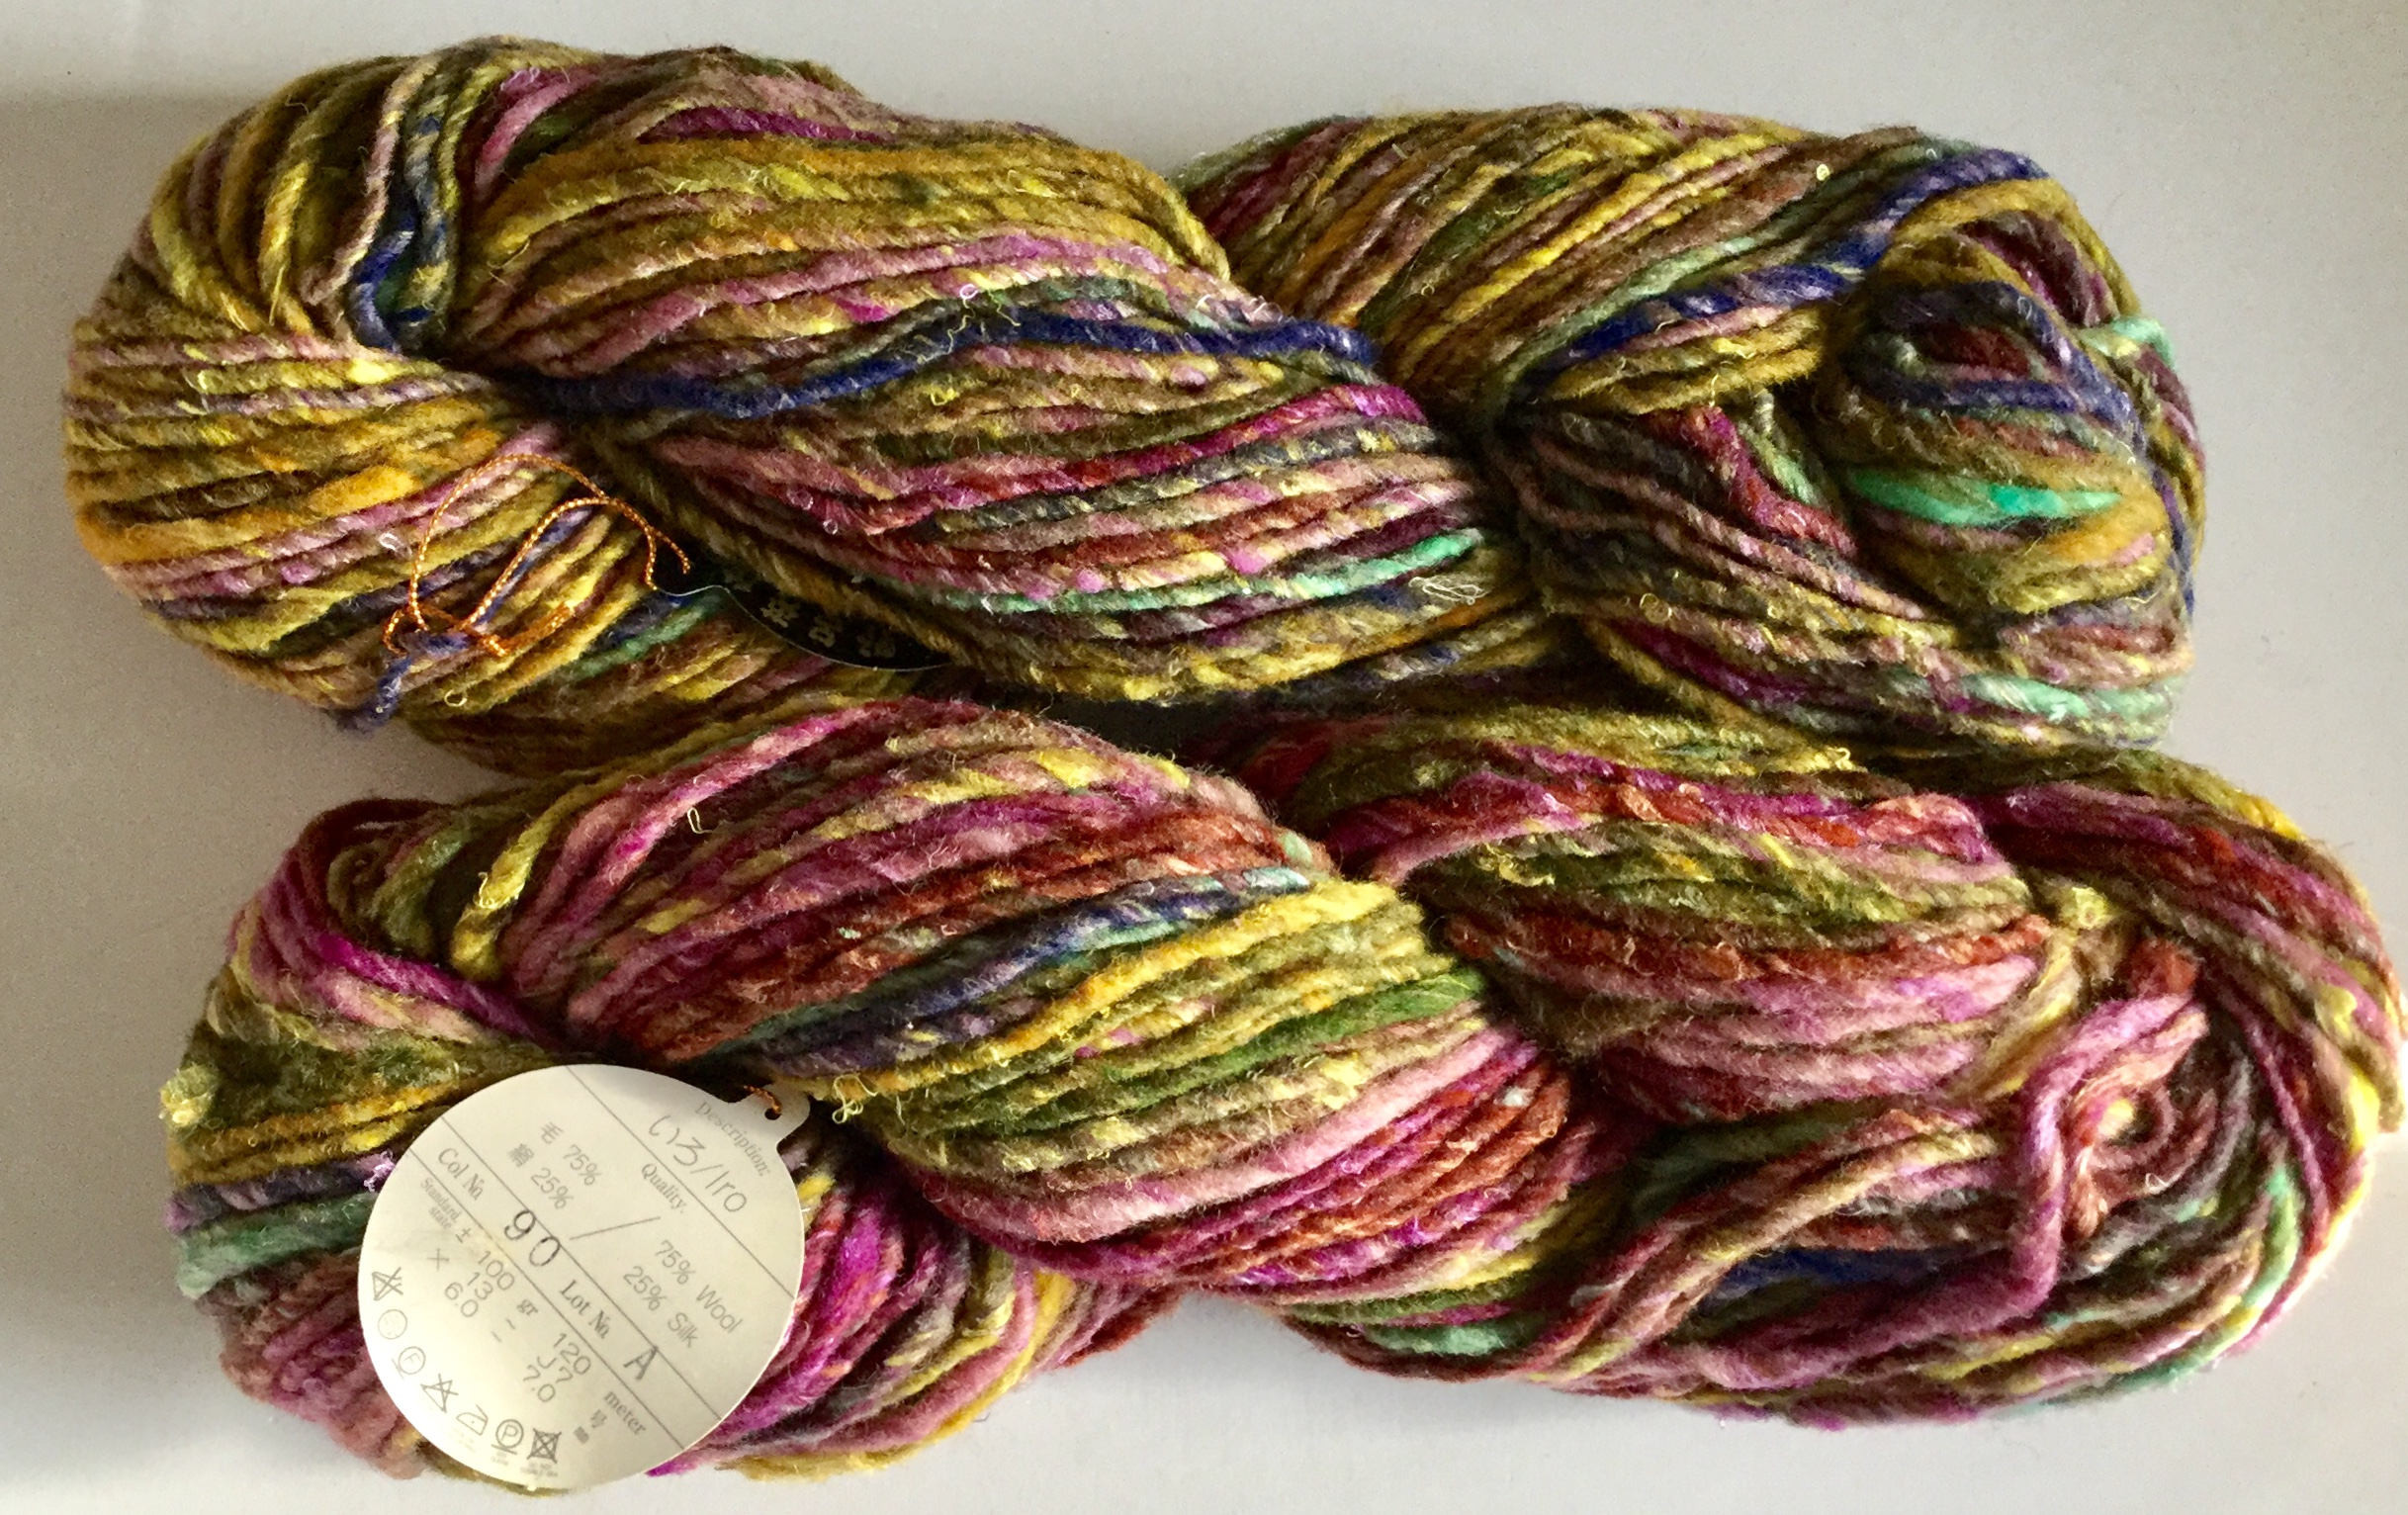 Noro Yarn Sale Fresh noro Iro Yarn 90 6 Skeins Available Price is for 1 Skein Of Superb 49 Images noro Yarn Sale